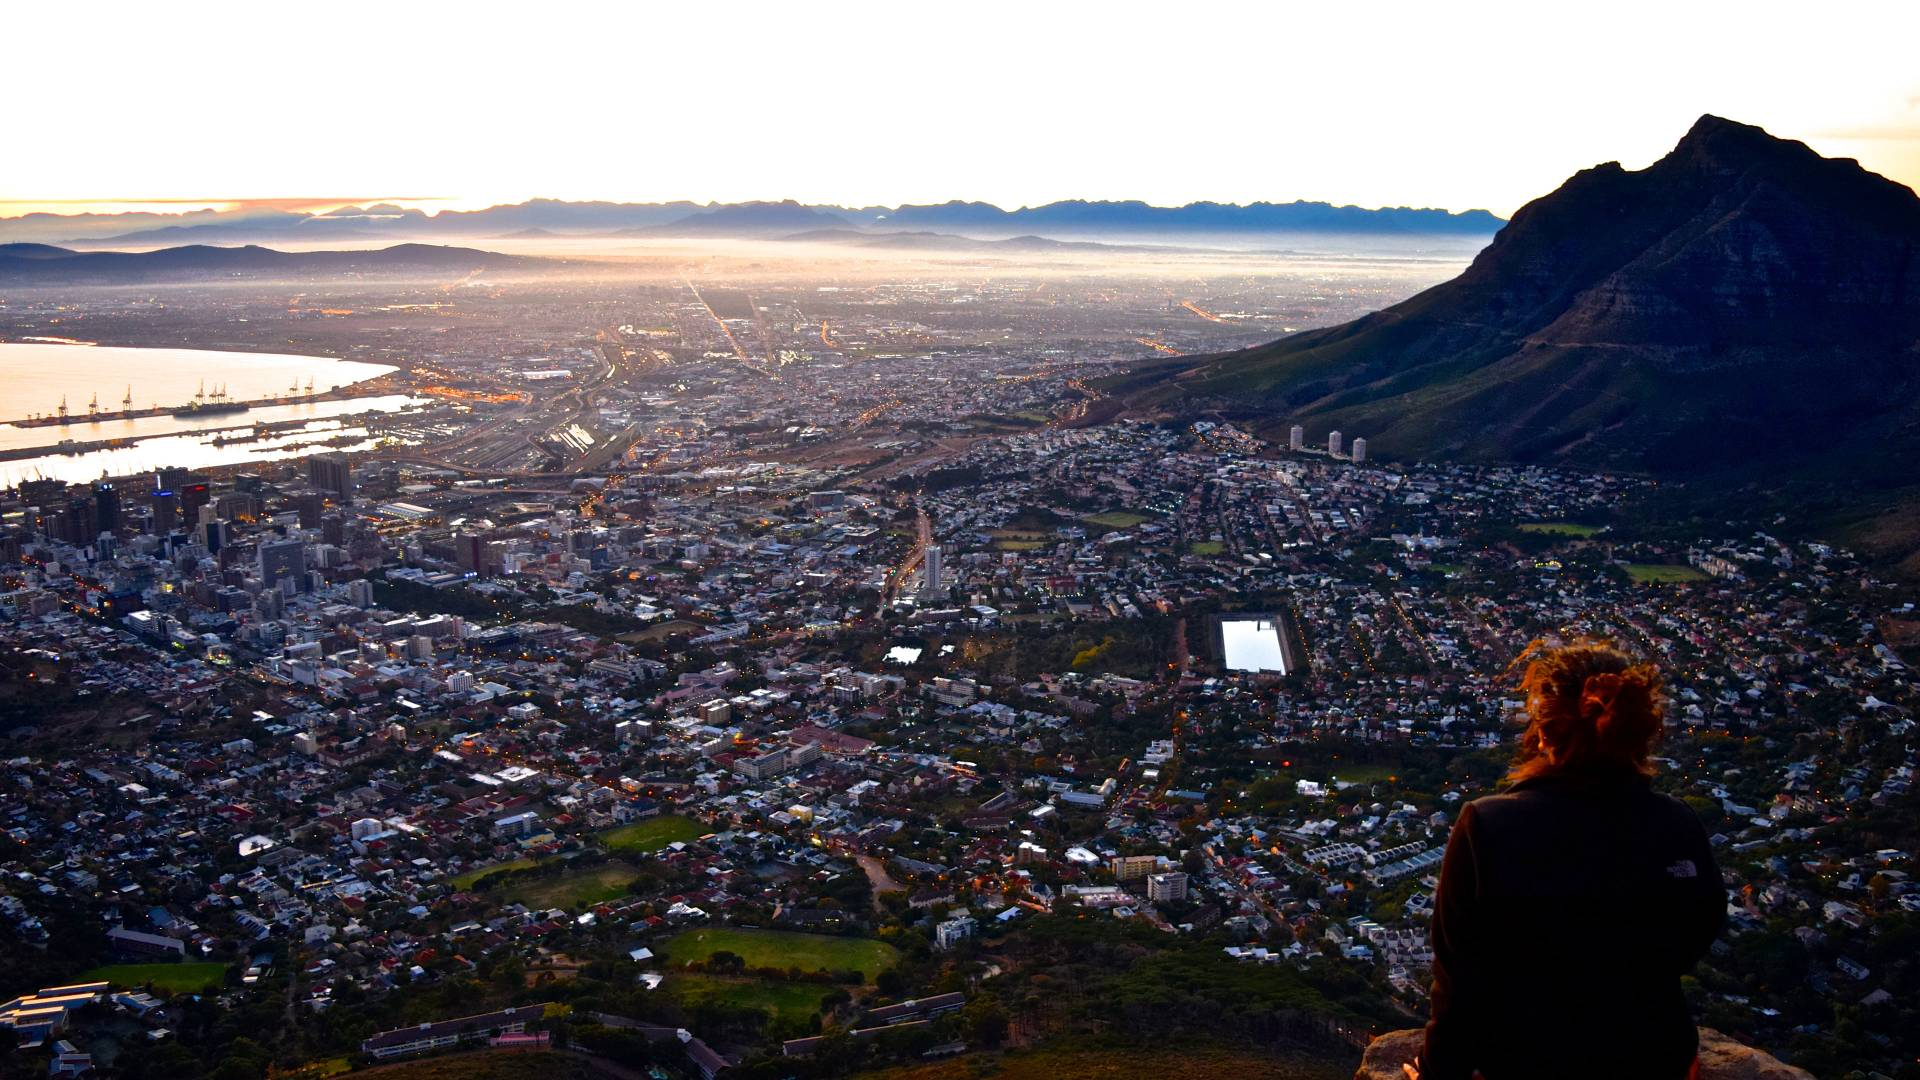 Student overlooks a city in South Africa